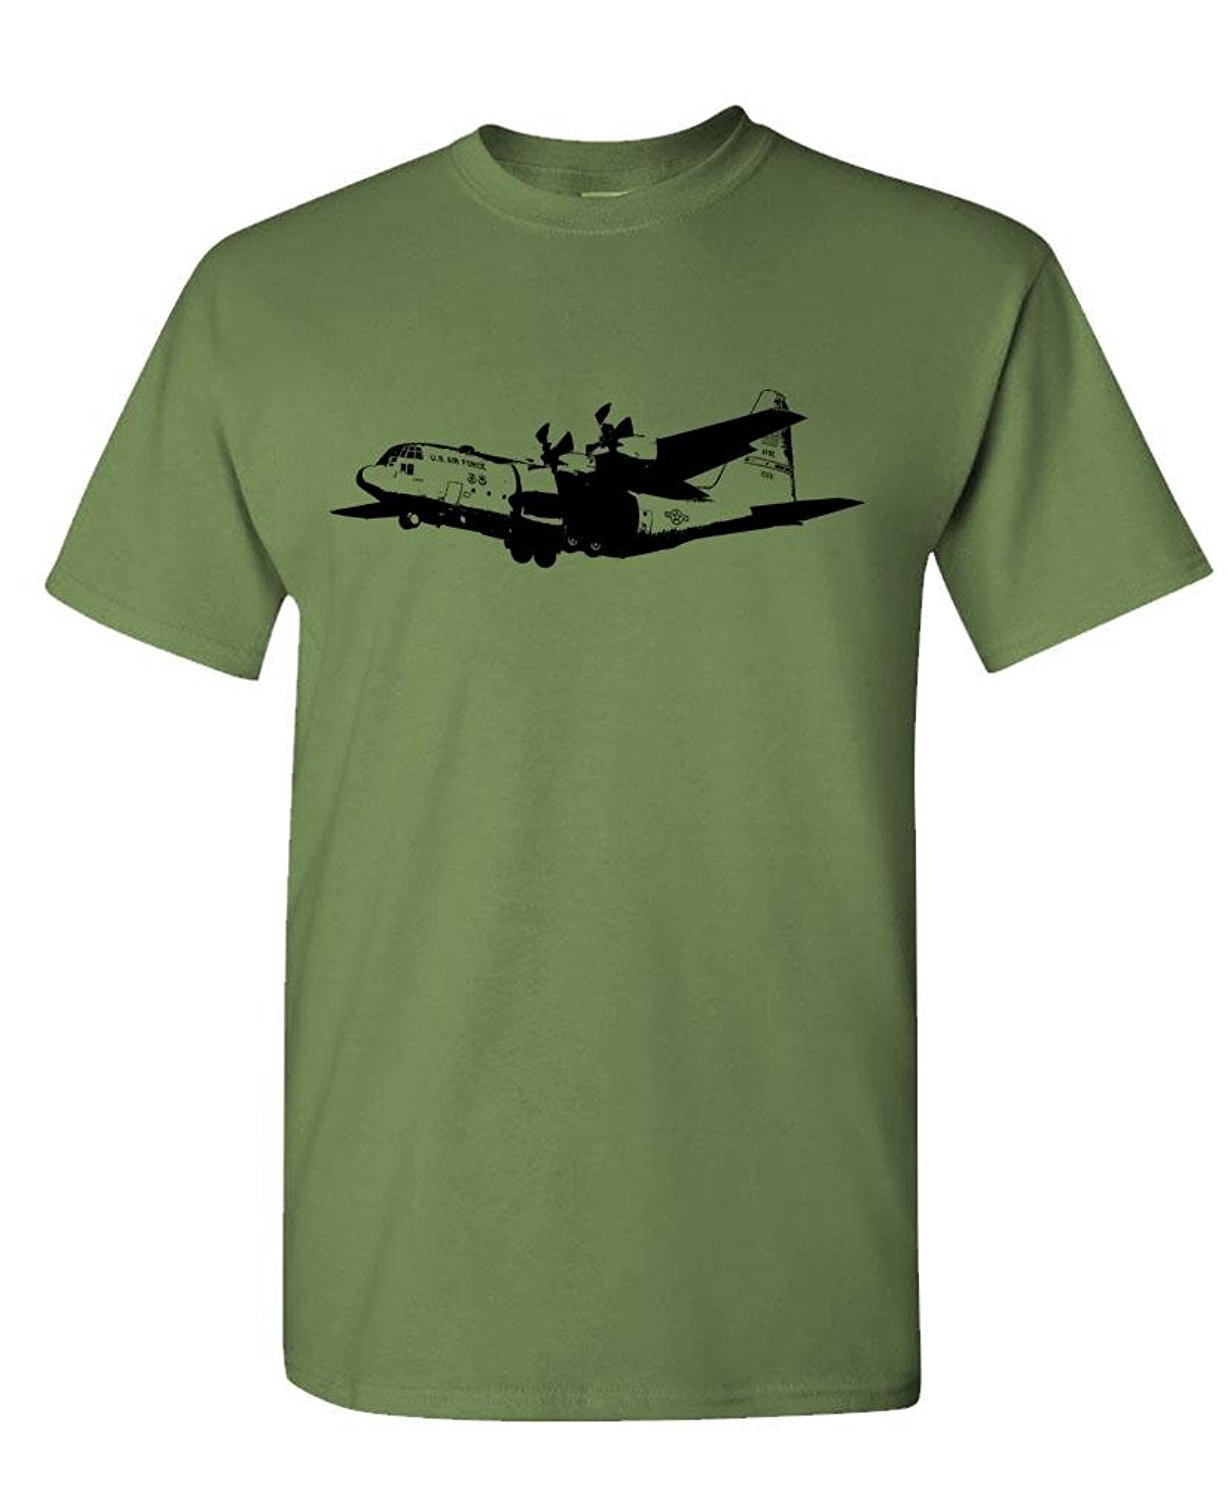 T-Shirt Male Hipster Tops Print Tshirt Summer ShortUnisex More Size And Colors - C-130 CARGO PLANE - Mens Cotton T-Shirt